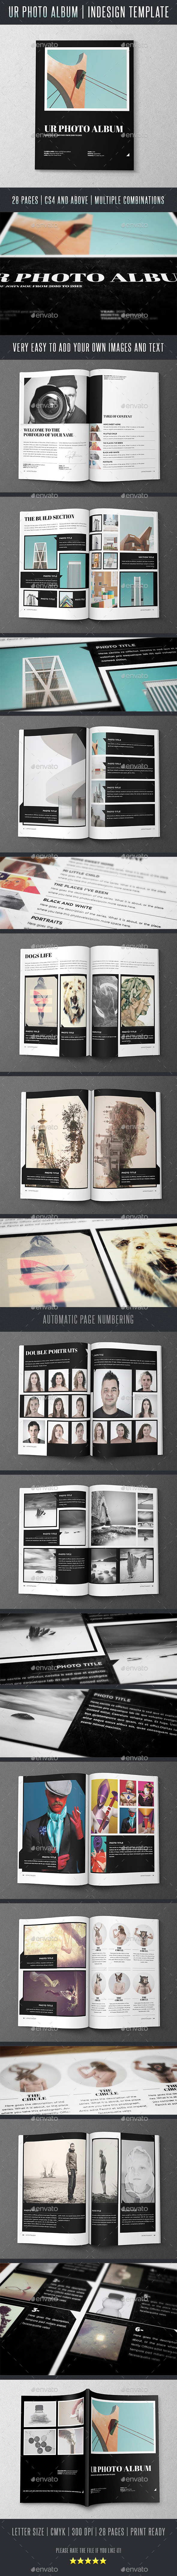 Ur Photo Album Indesign Template - Photo Albums Print Templates